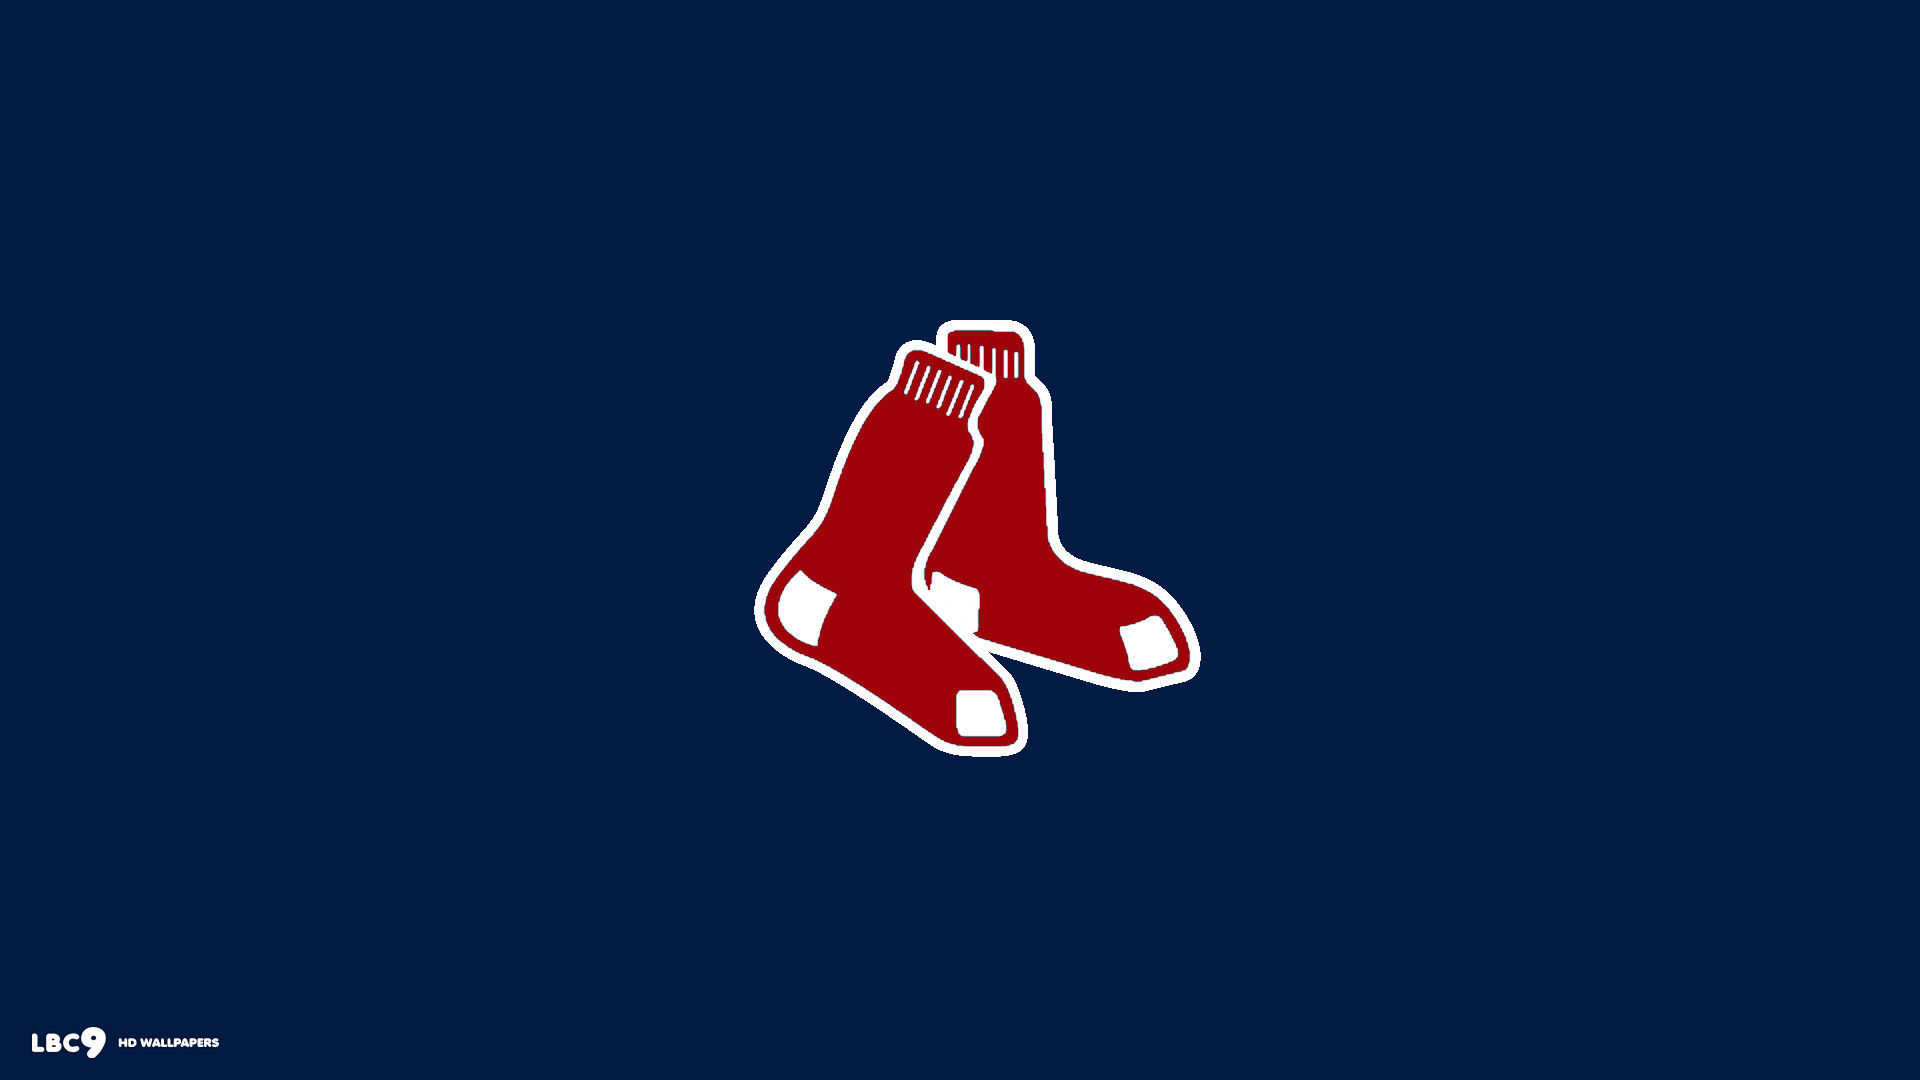 Download Mlb Team Wallpapers 37   Wallpaper For your screen 1920x1080